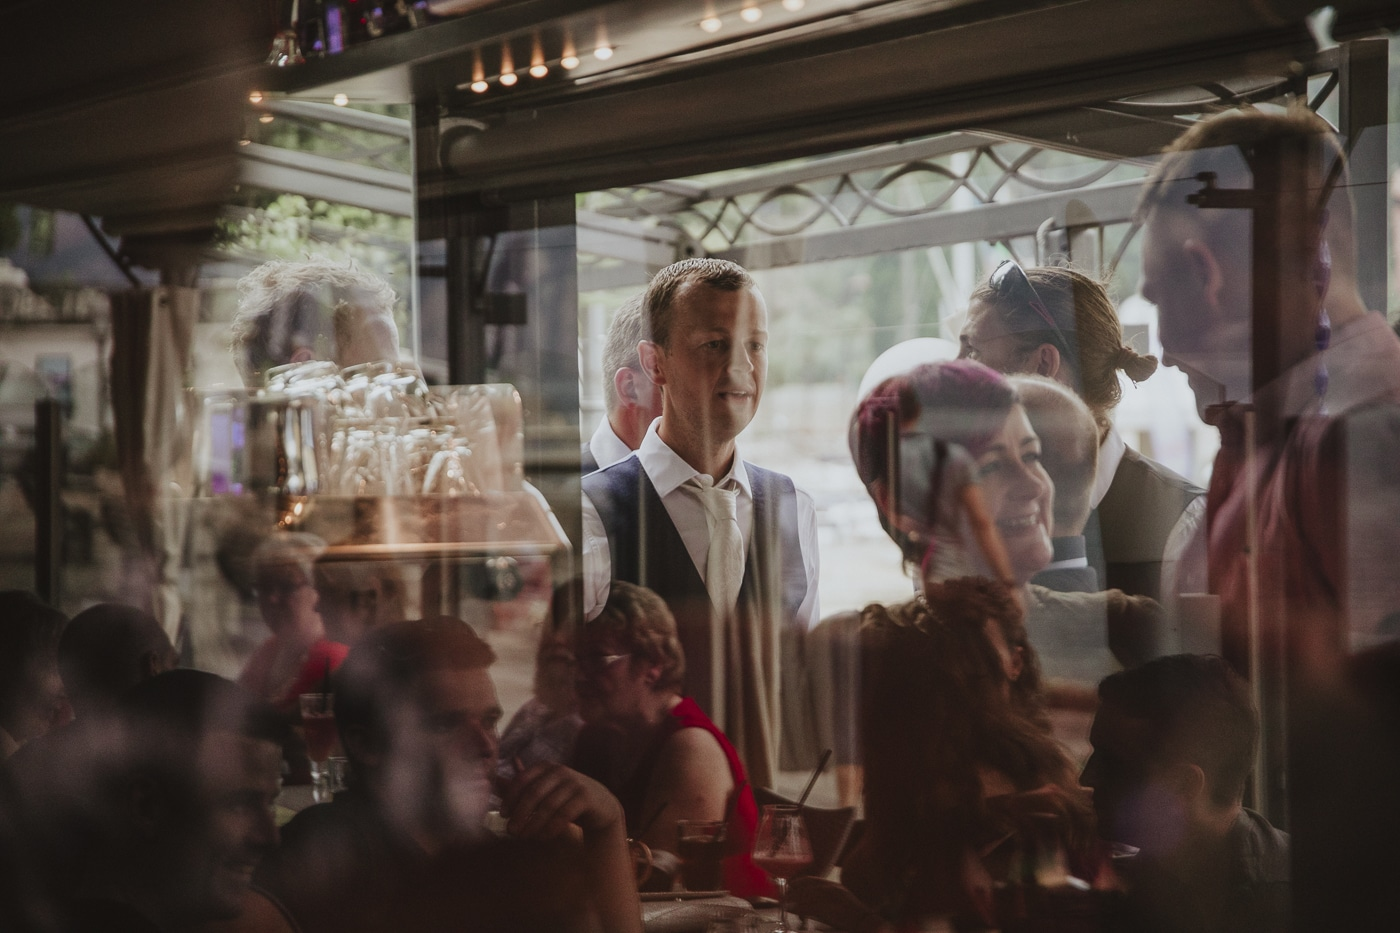 Reflection of glasses and wedding guests in suits for a wedding on lake garda italy